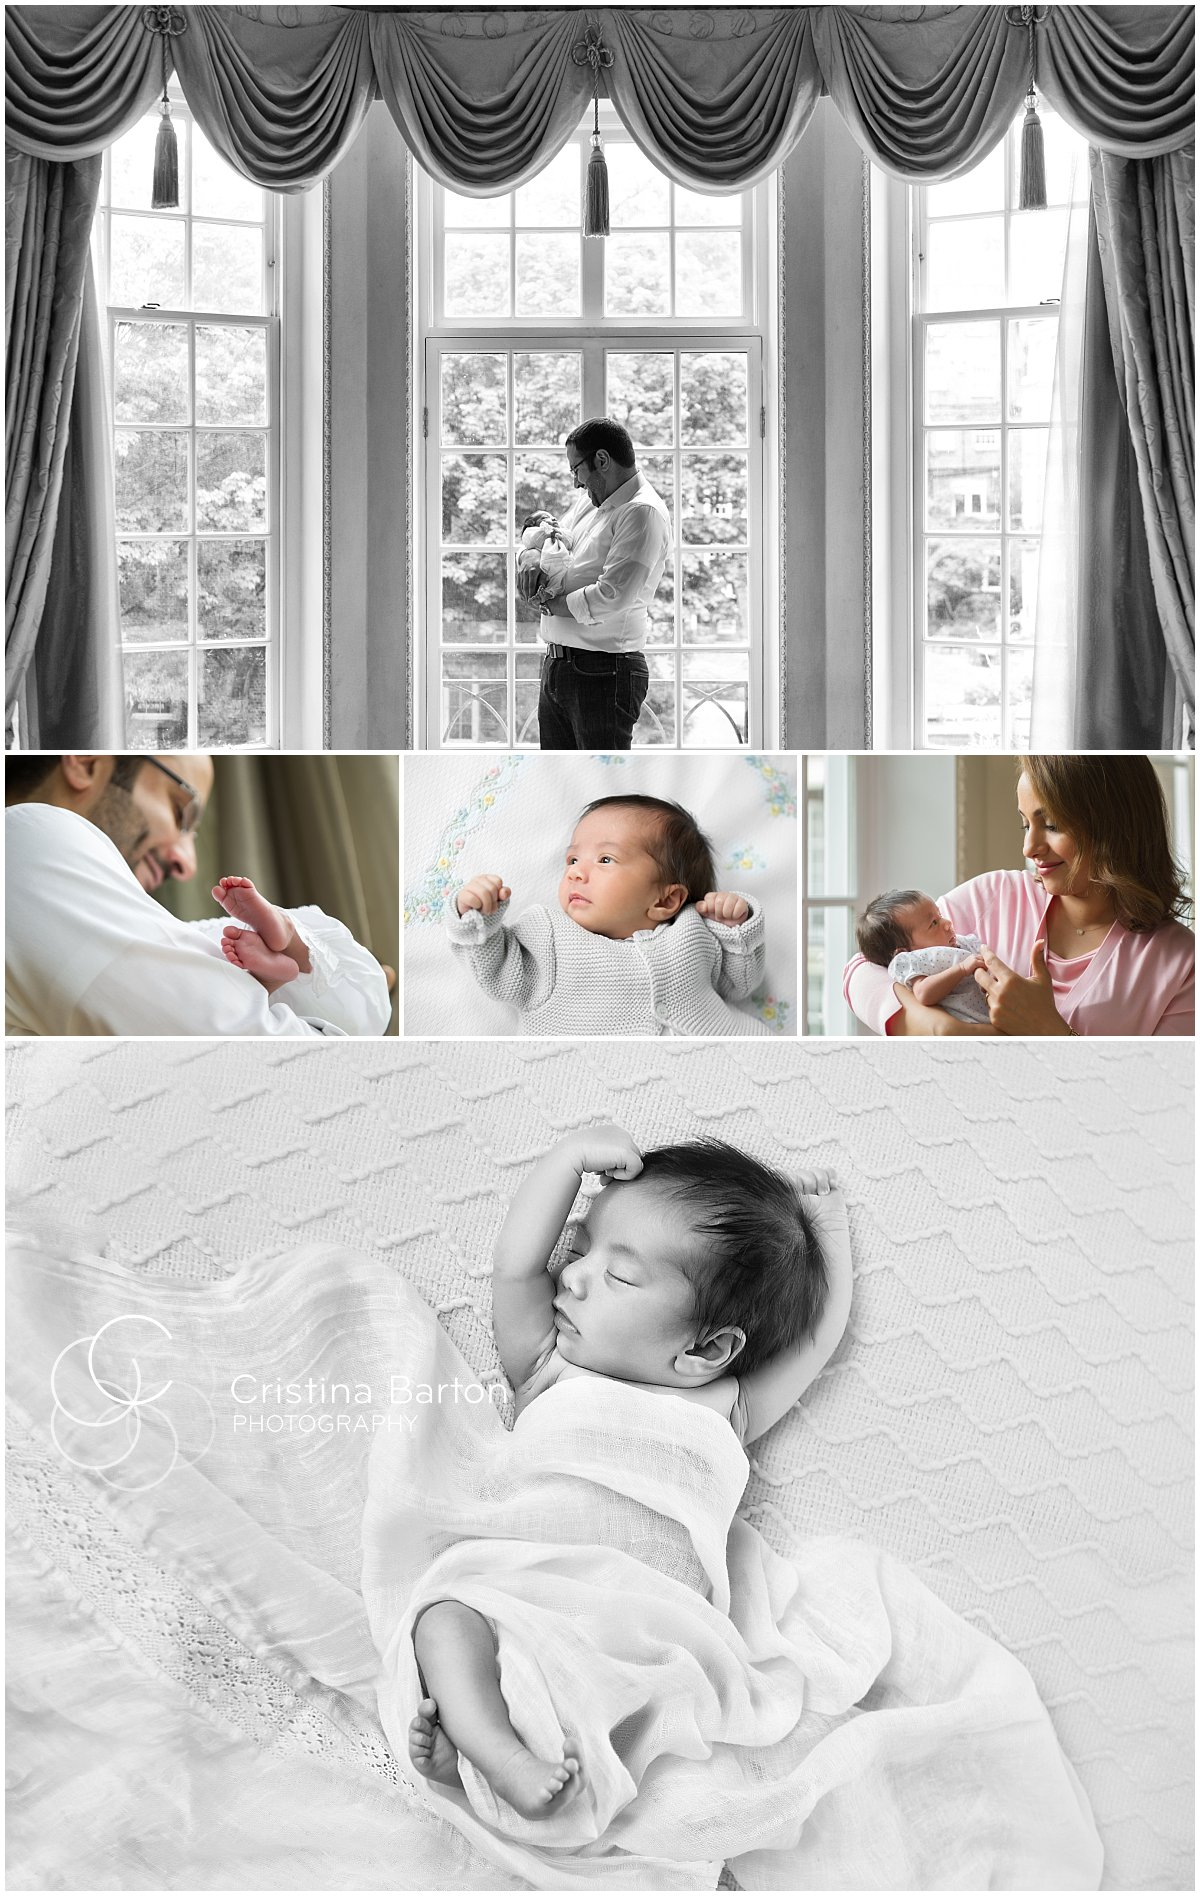 top newborn portraits photographer London